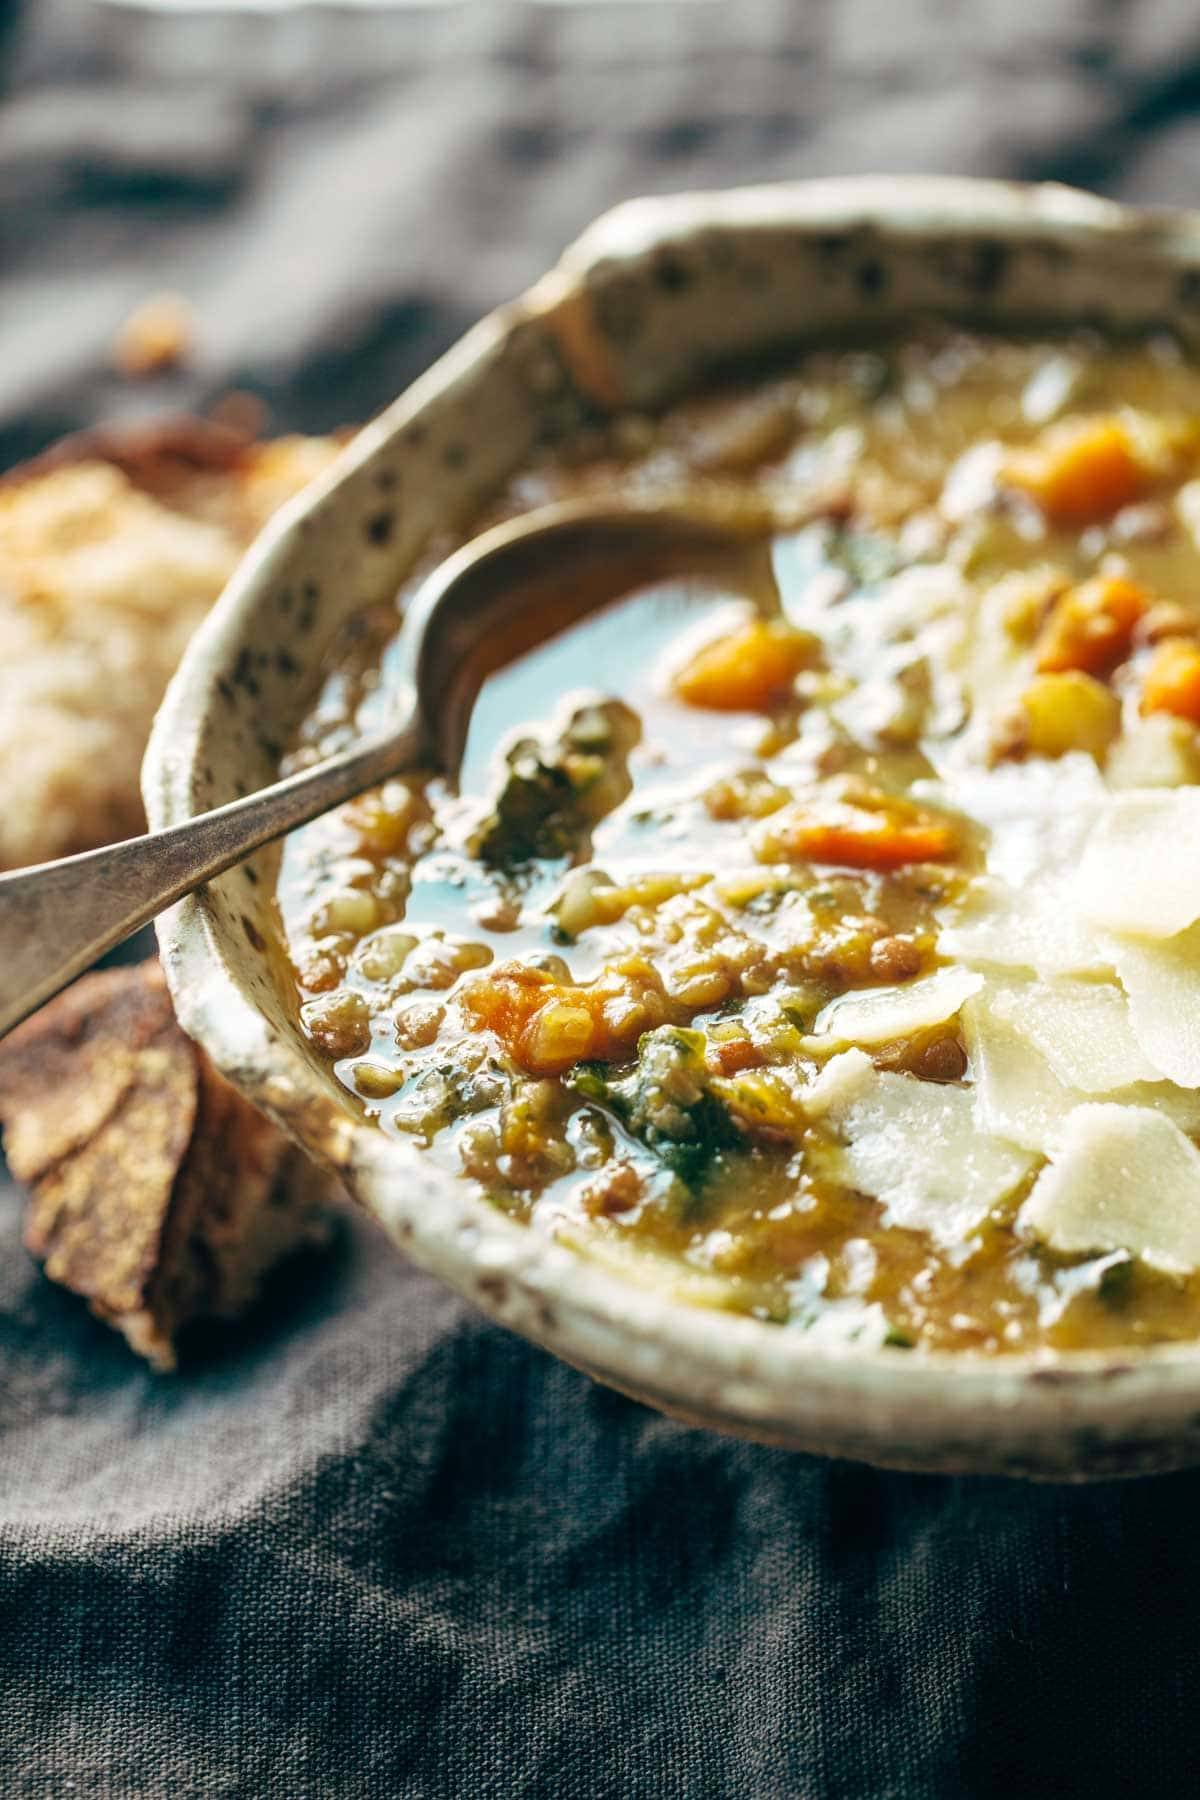 lentil soup in a bowl with a spoon